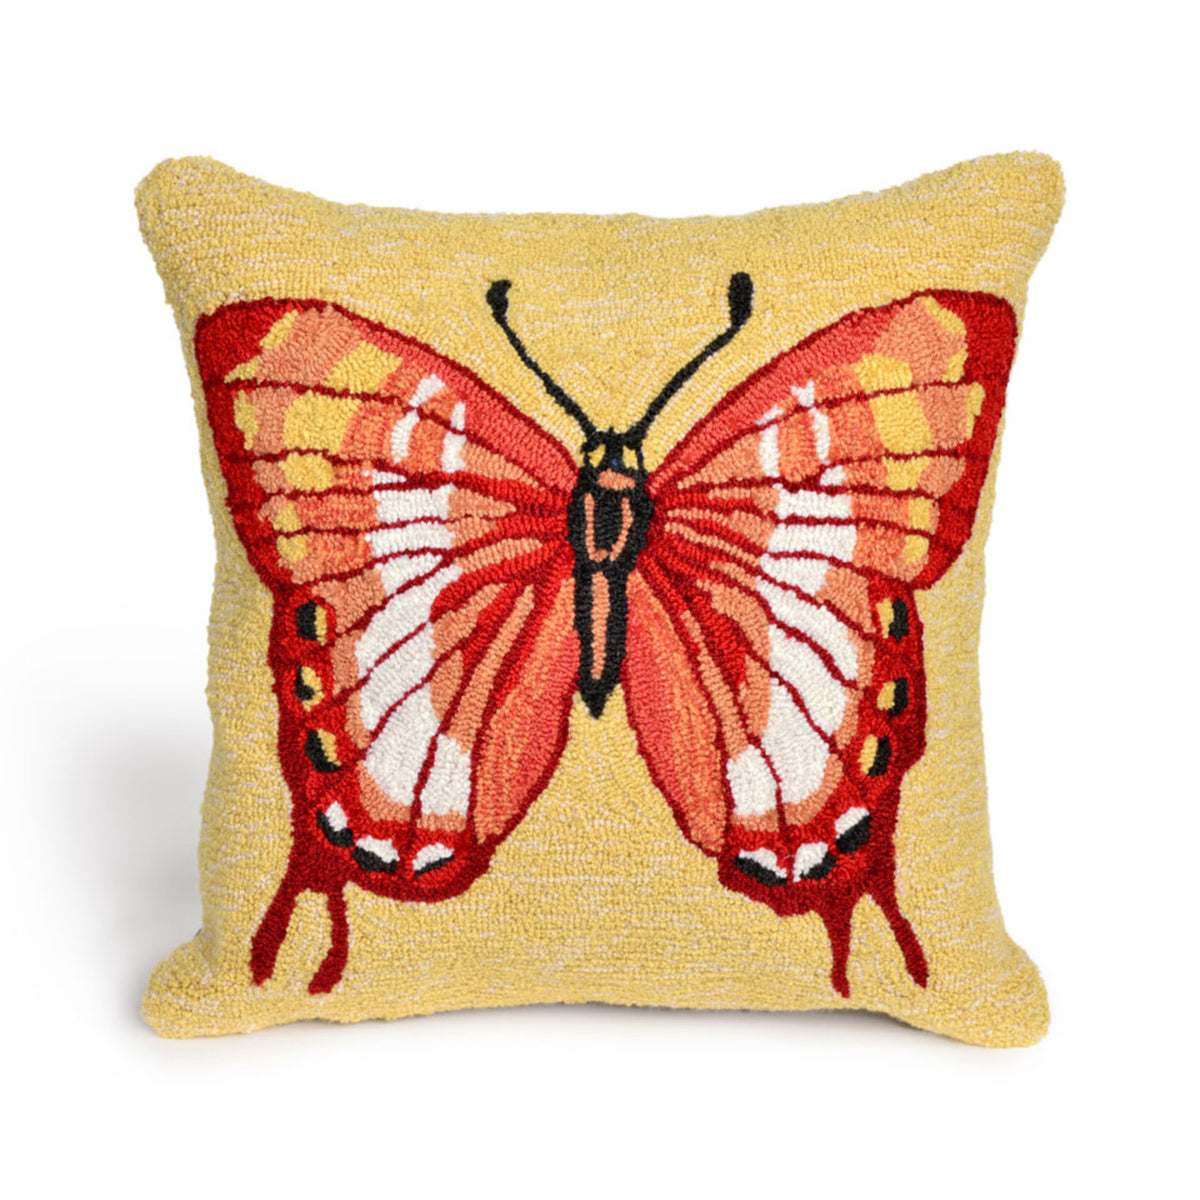 Frontporch Butterfly Warm Pillows